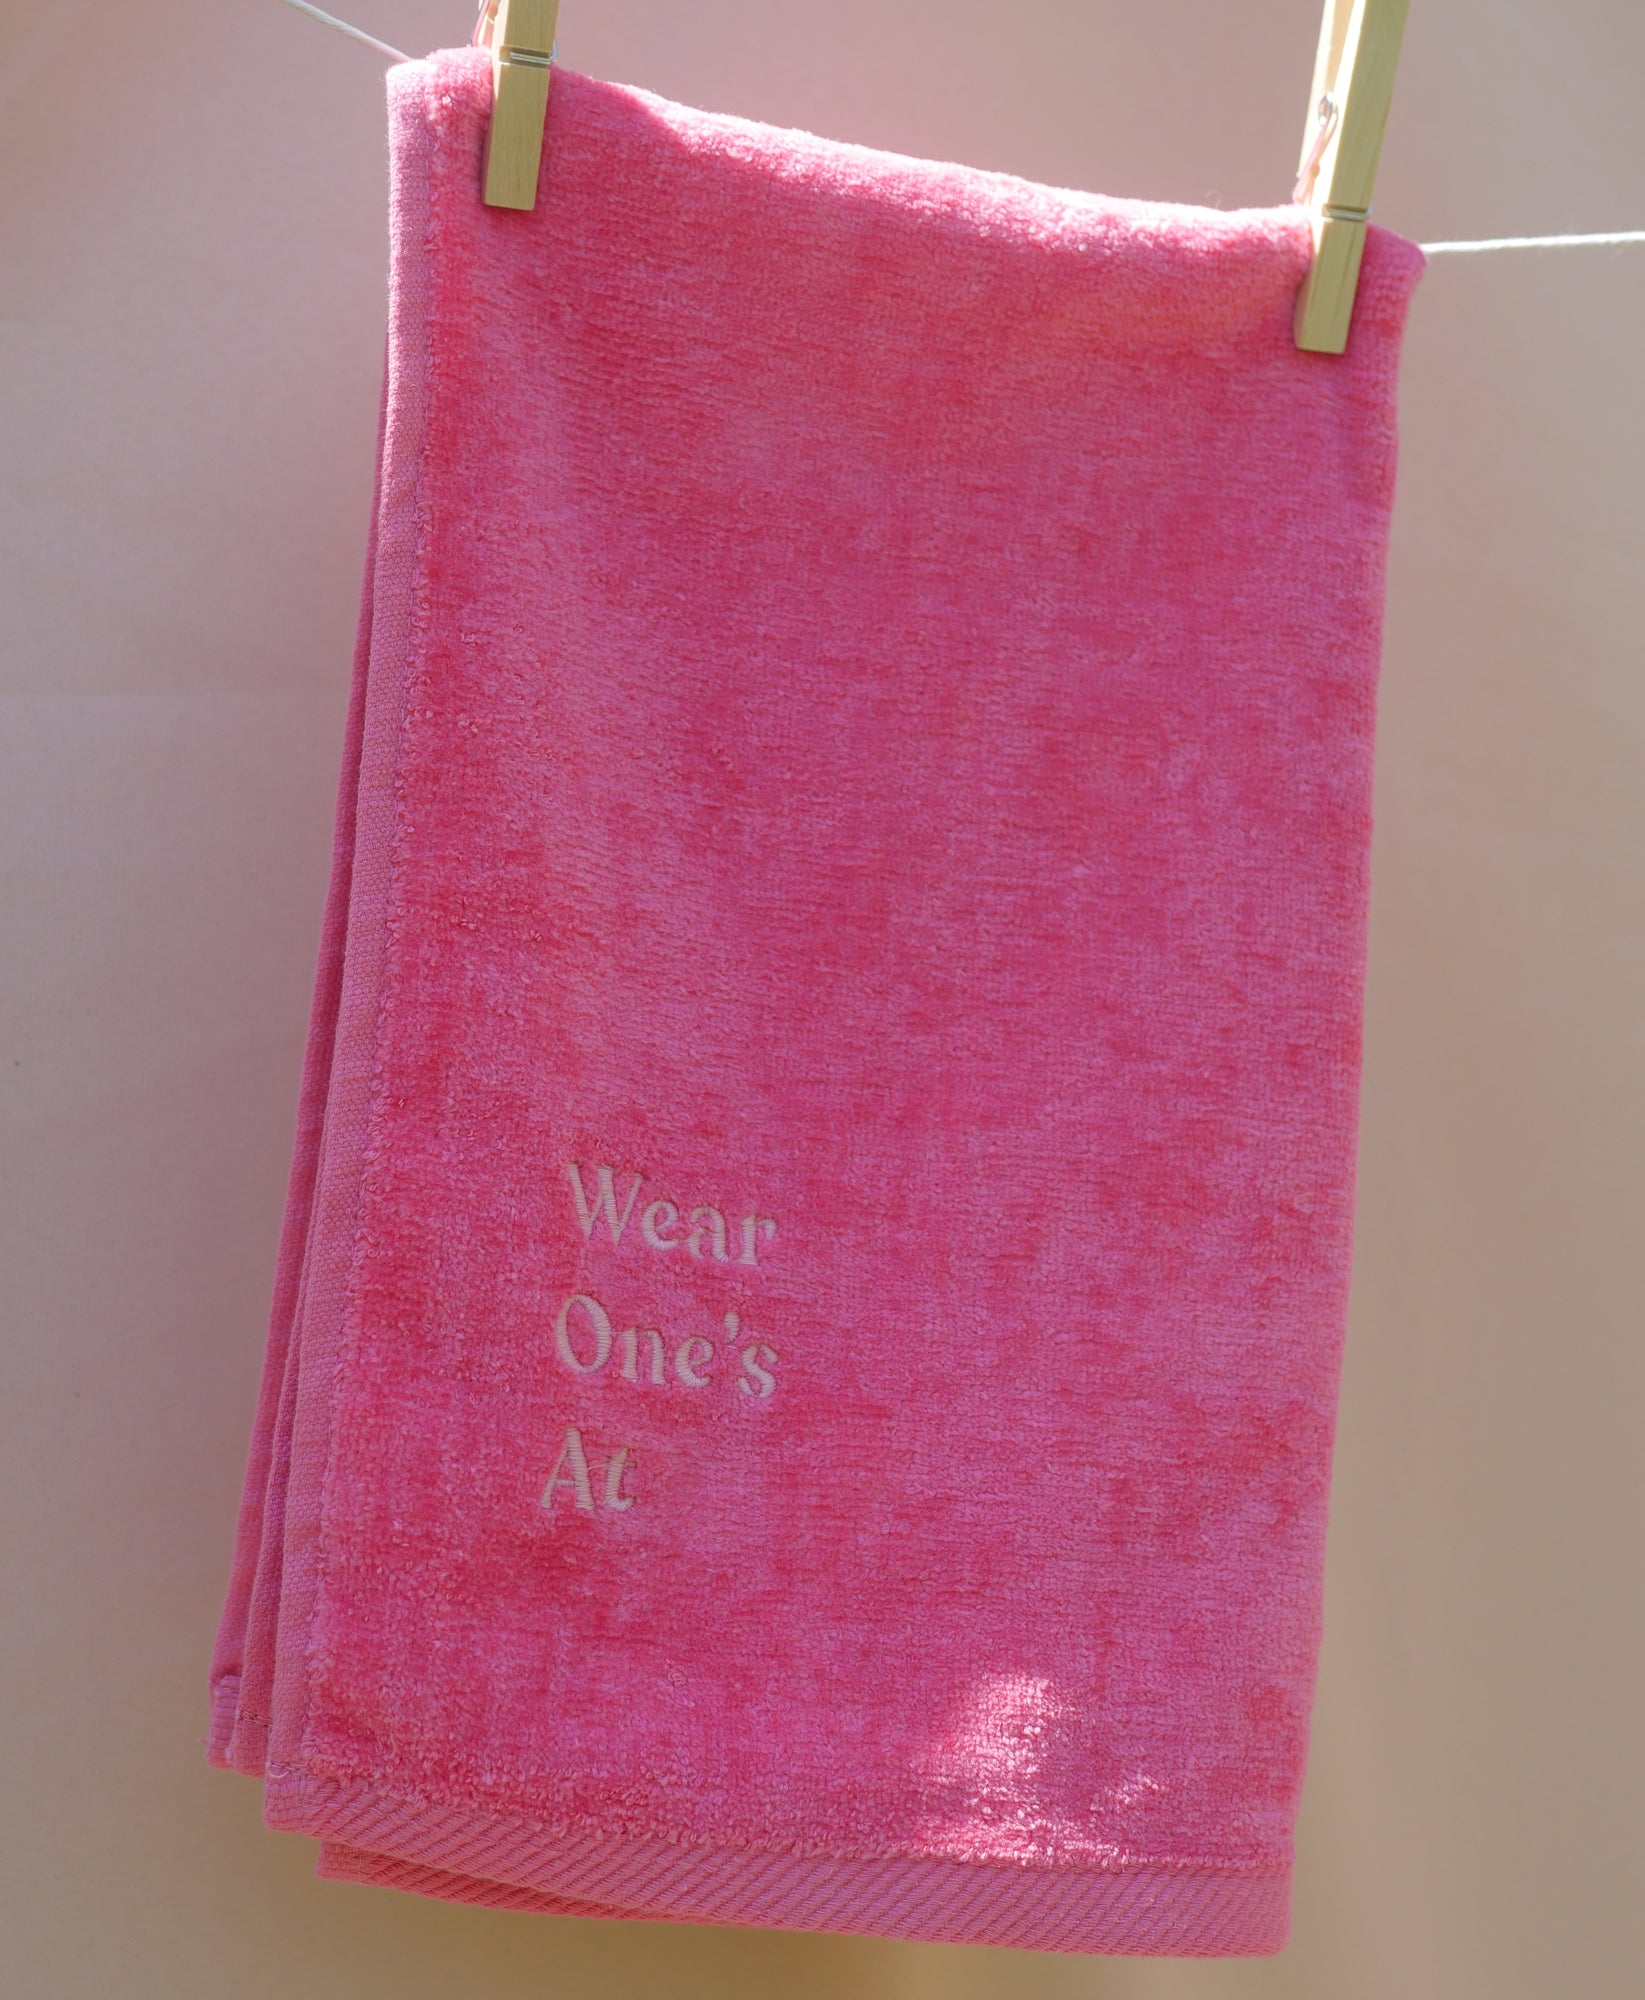 Wear One's At Logo Sport Towel in Punch Pink Full View